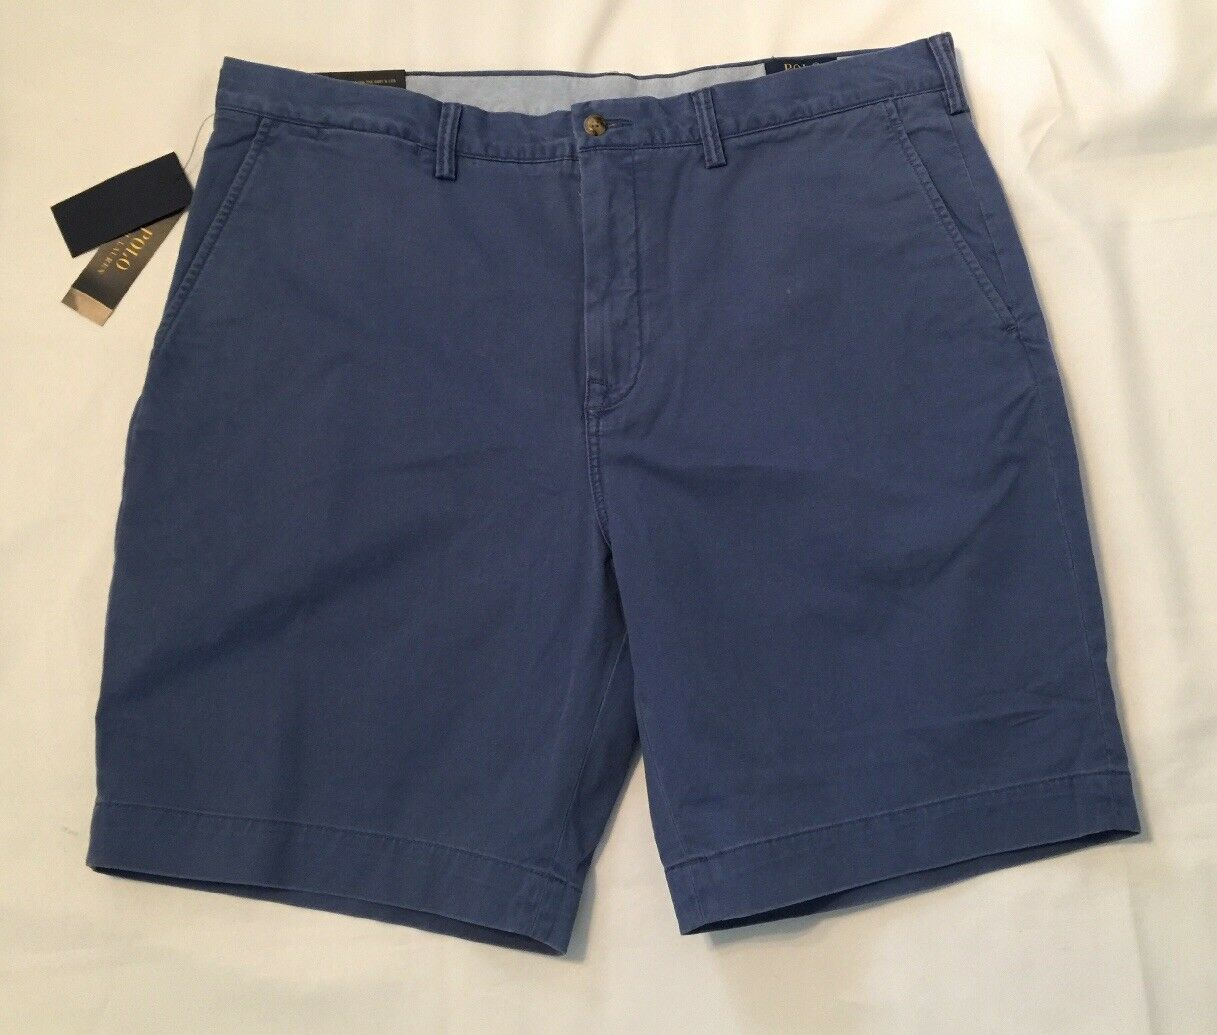 "NWT Mens Polo Ralph Lauren Classic Fit 9"" Shorts bluee Size 38"